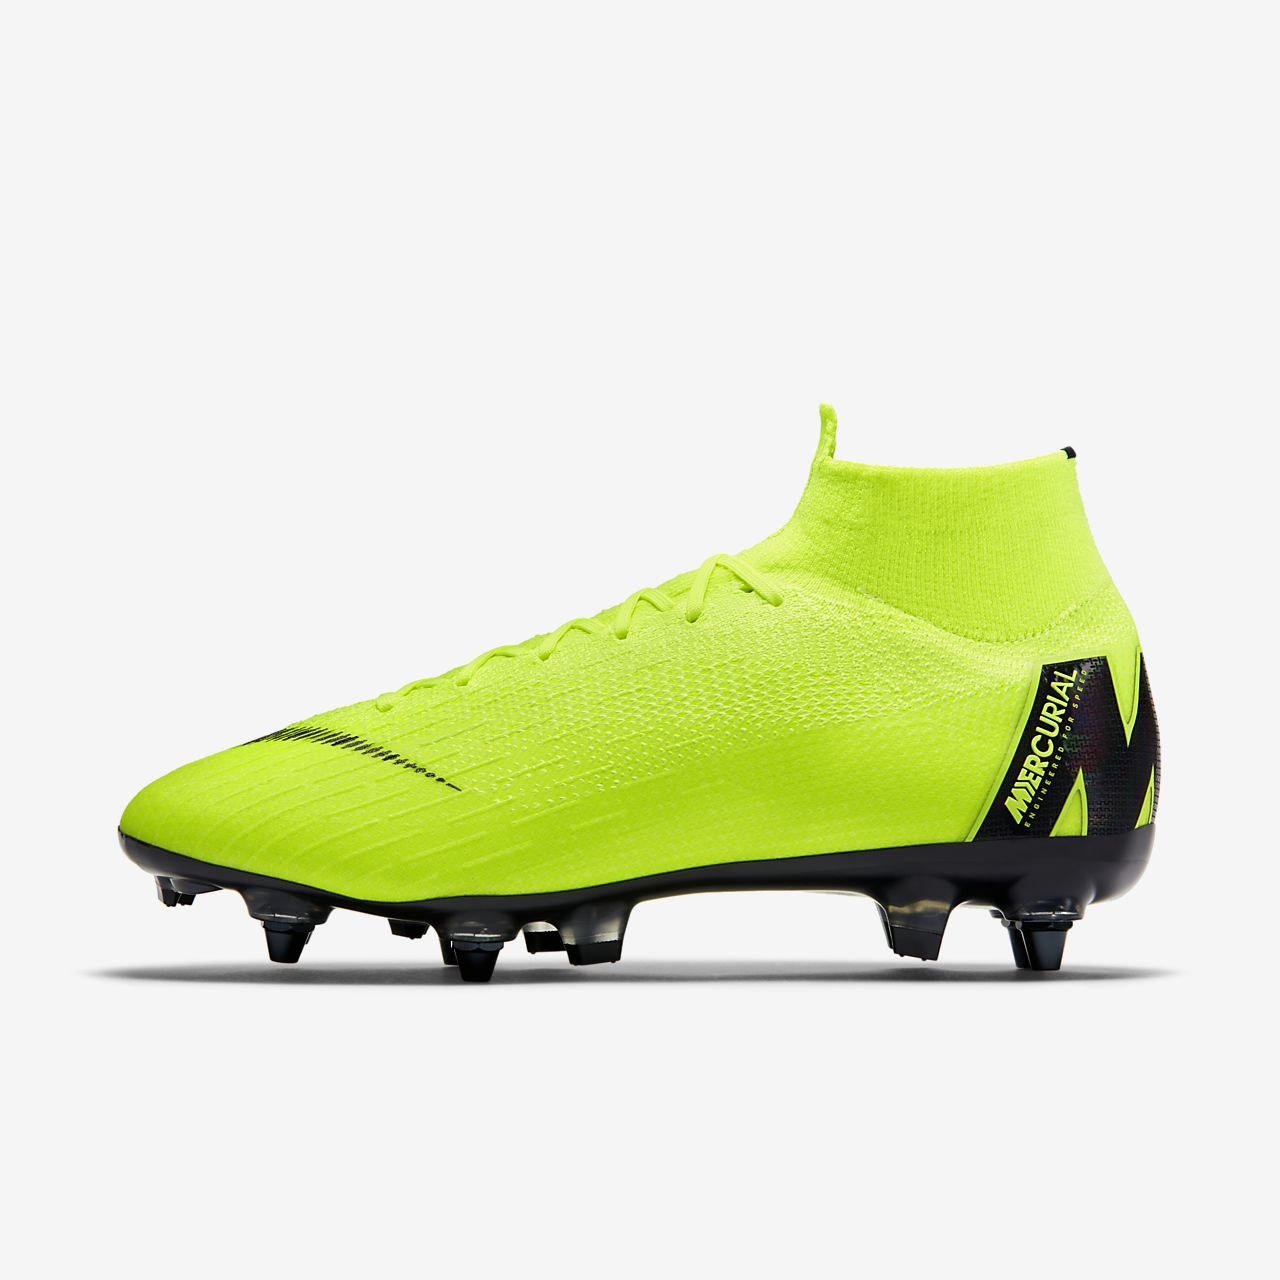 Nike Mercurial Superfly 360 Elite SG-PRO Anti-Clog Soft-Ground Football Boot